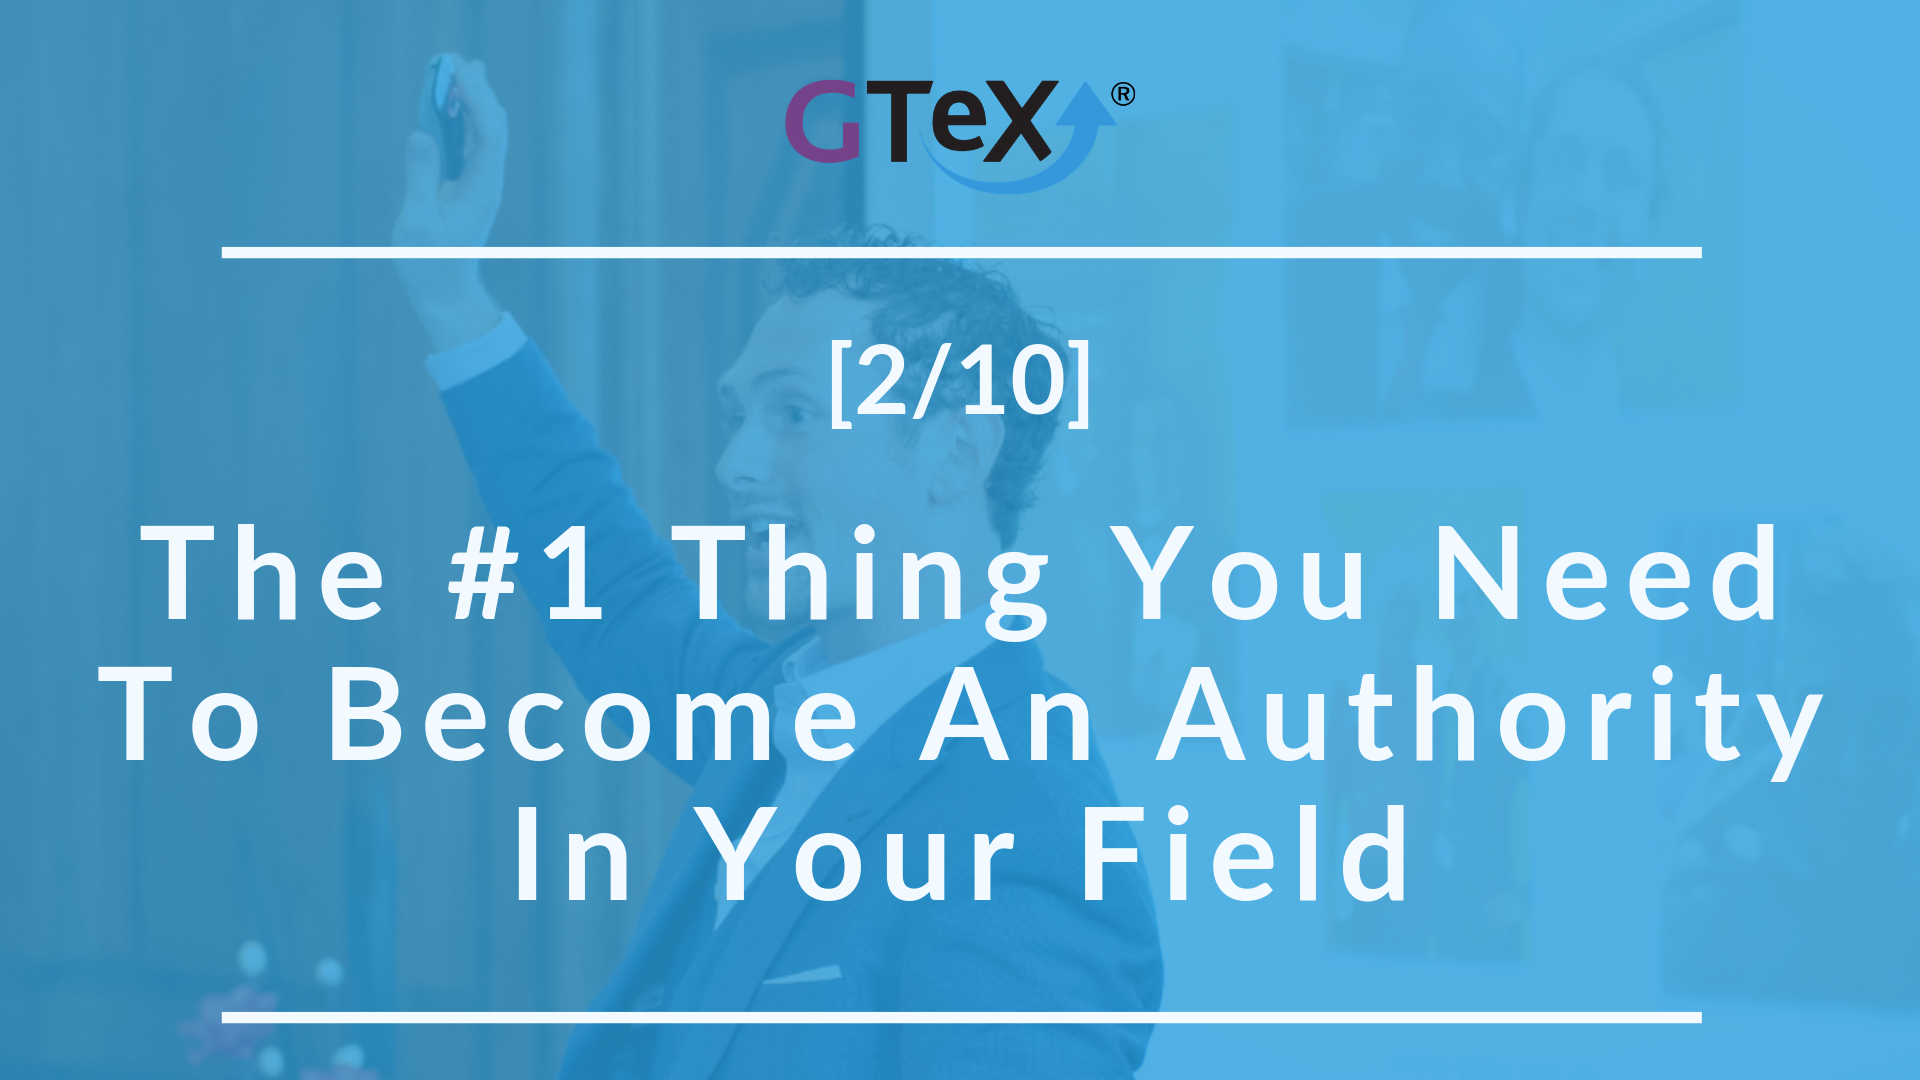 [2/10] The #1 Thing You Need to become an authority in your field